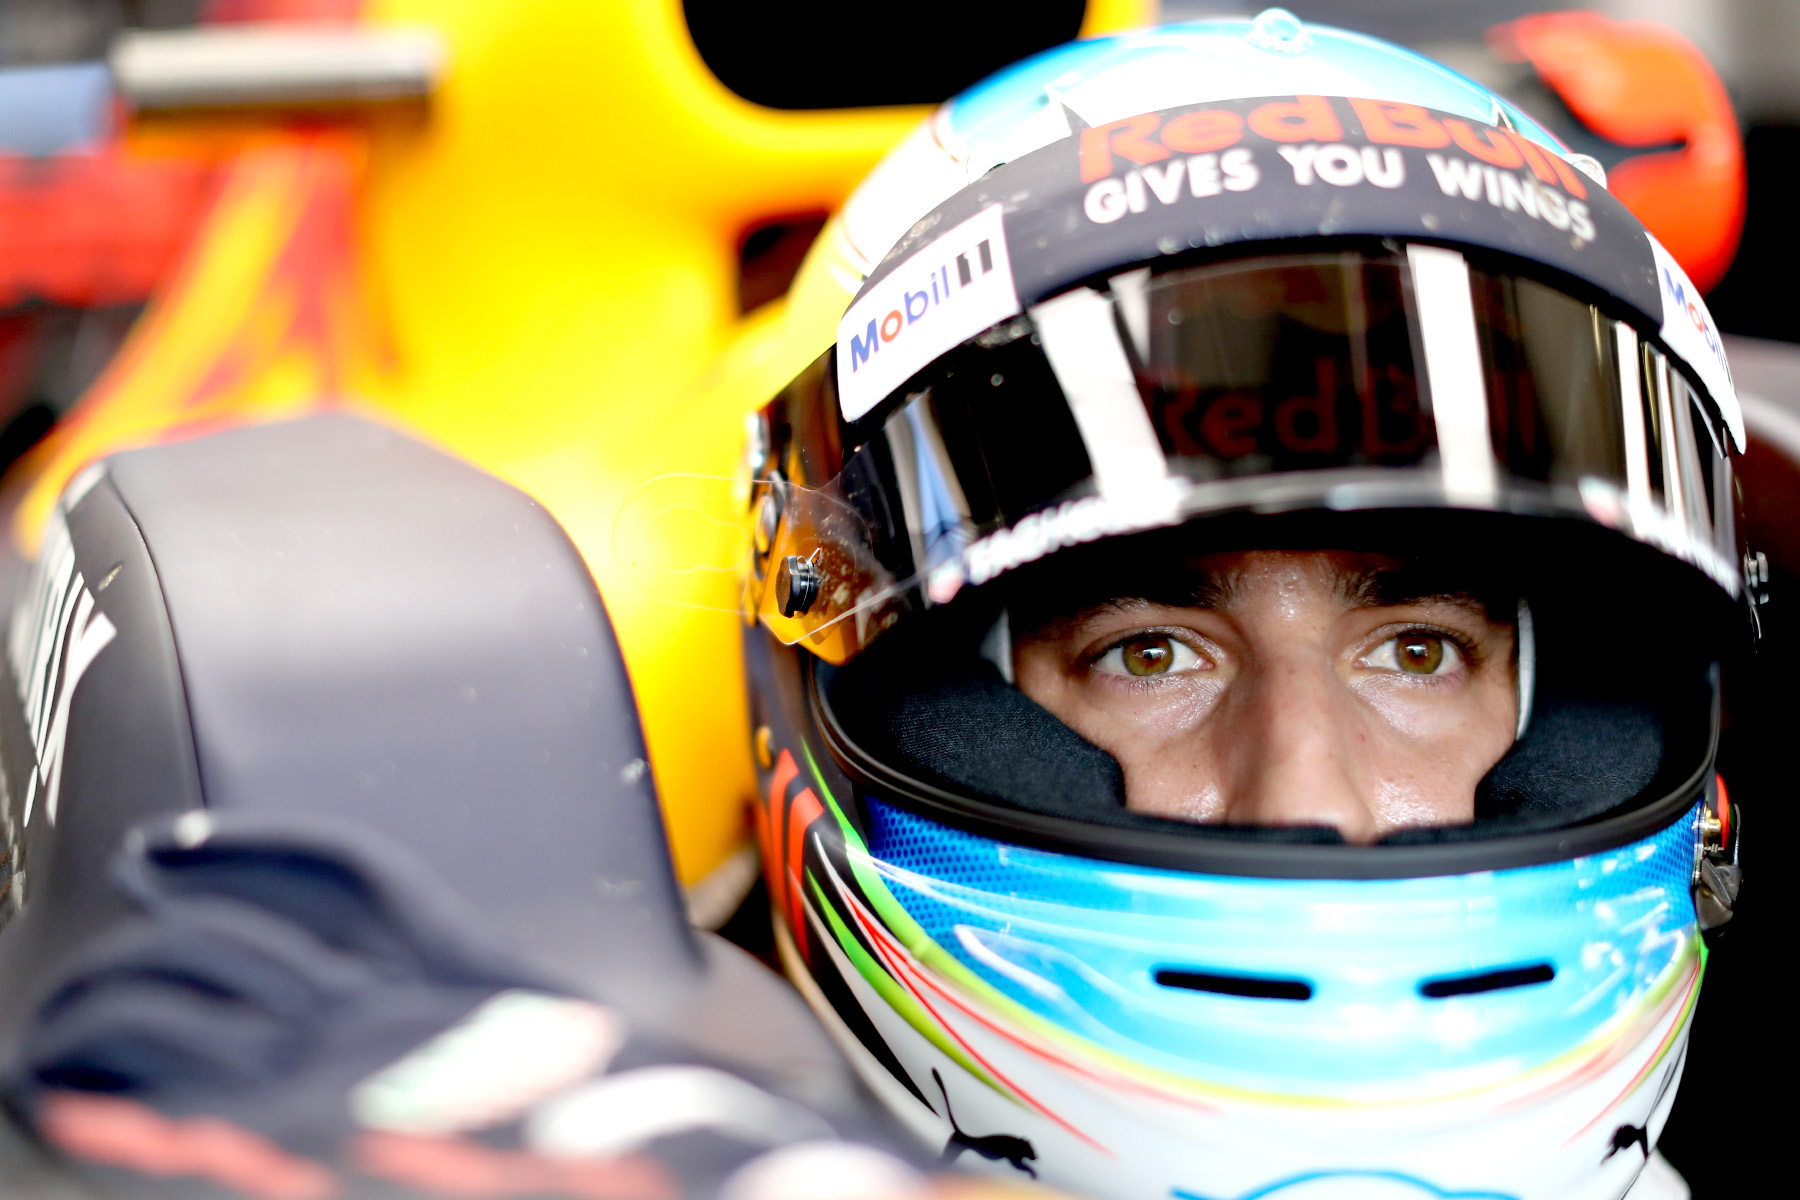 Daniel Ricciardo sits in his Red Bull Racing car at the 2017 Austrian Grand Prix